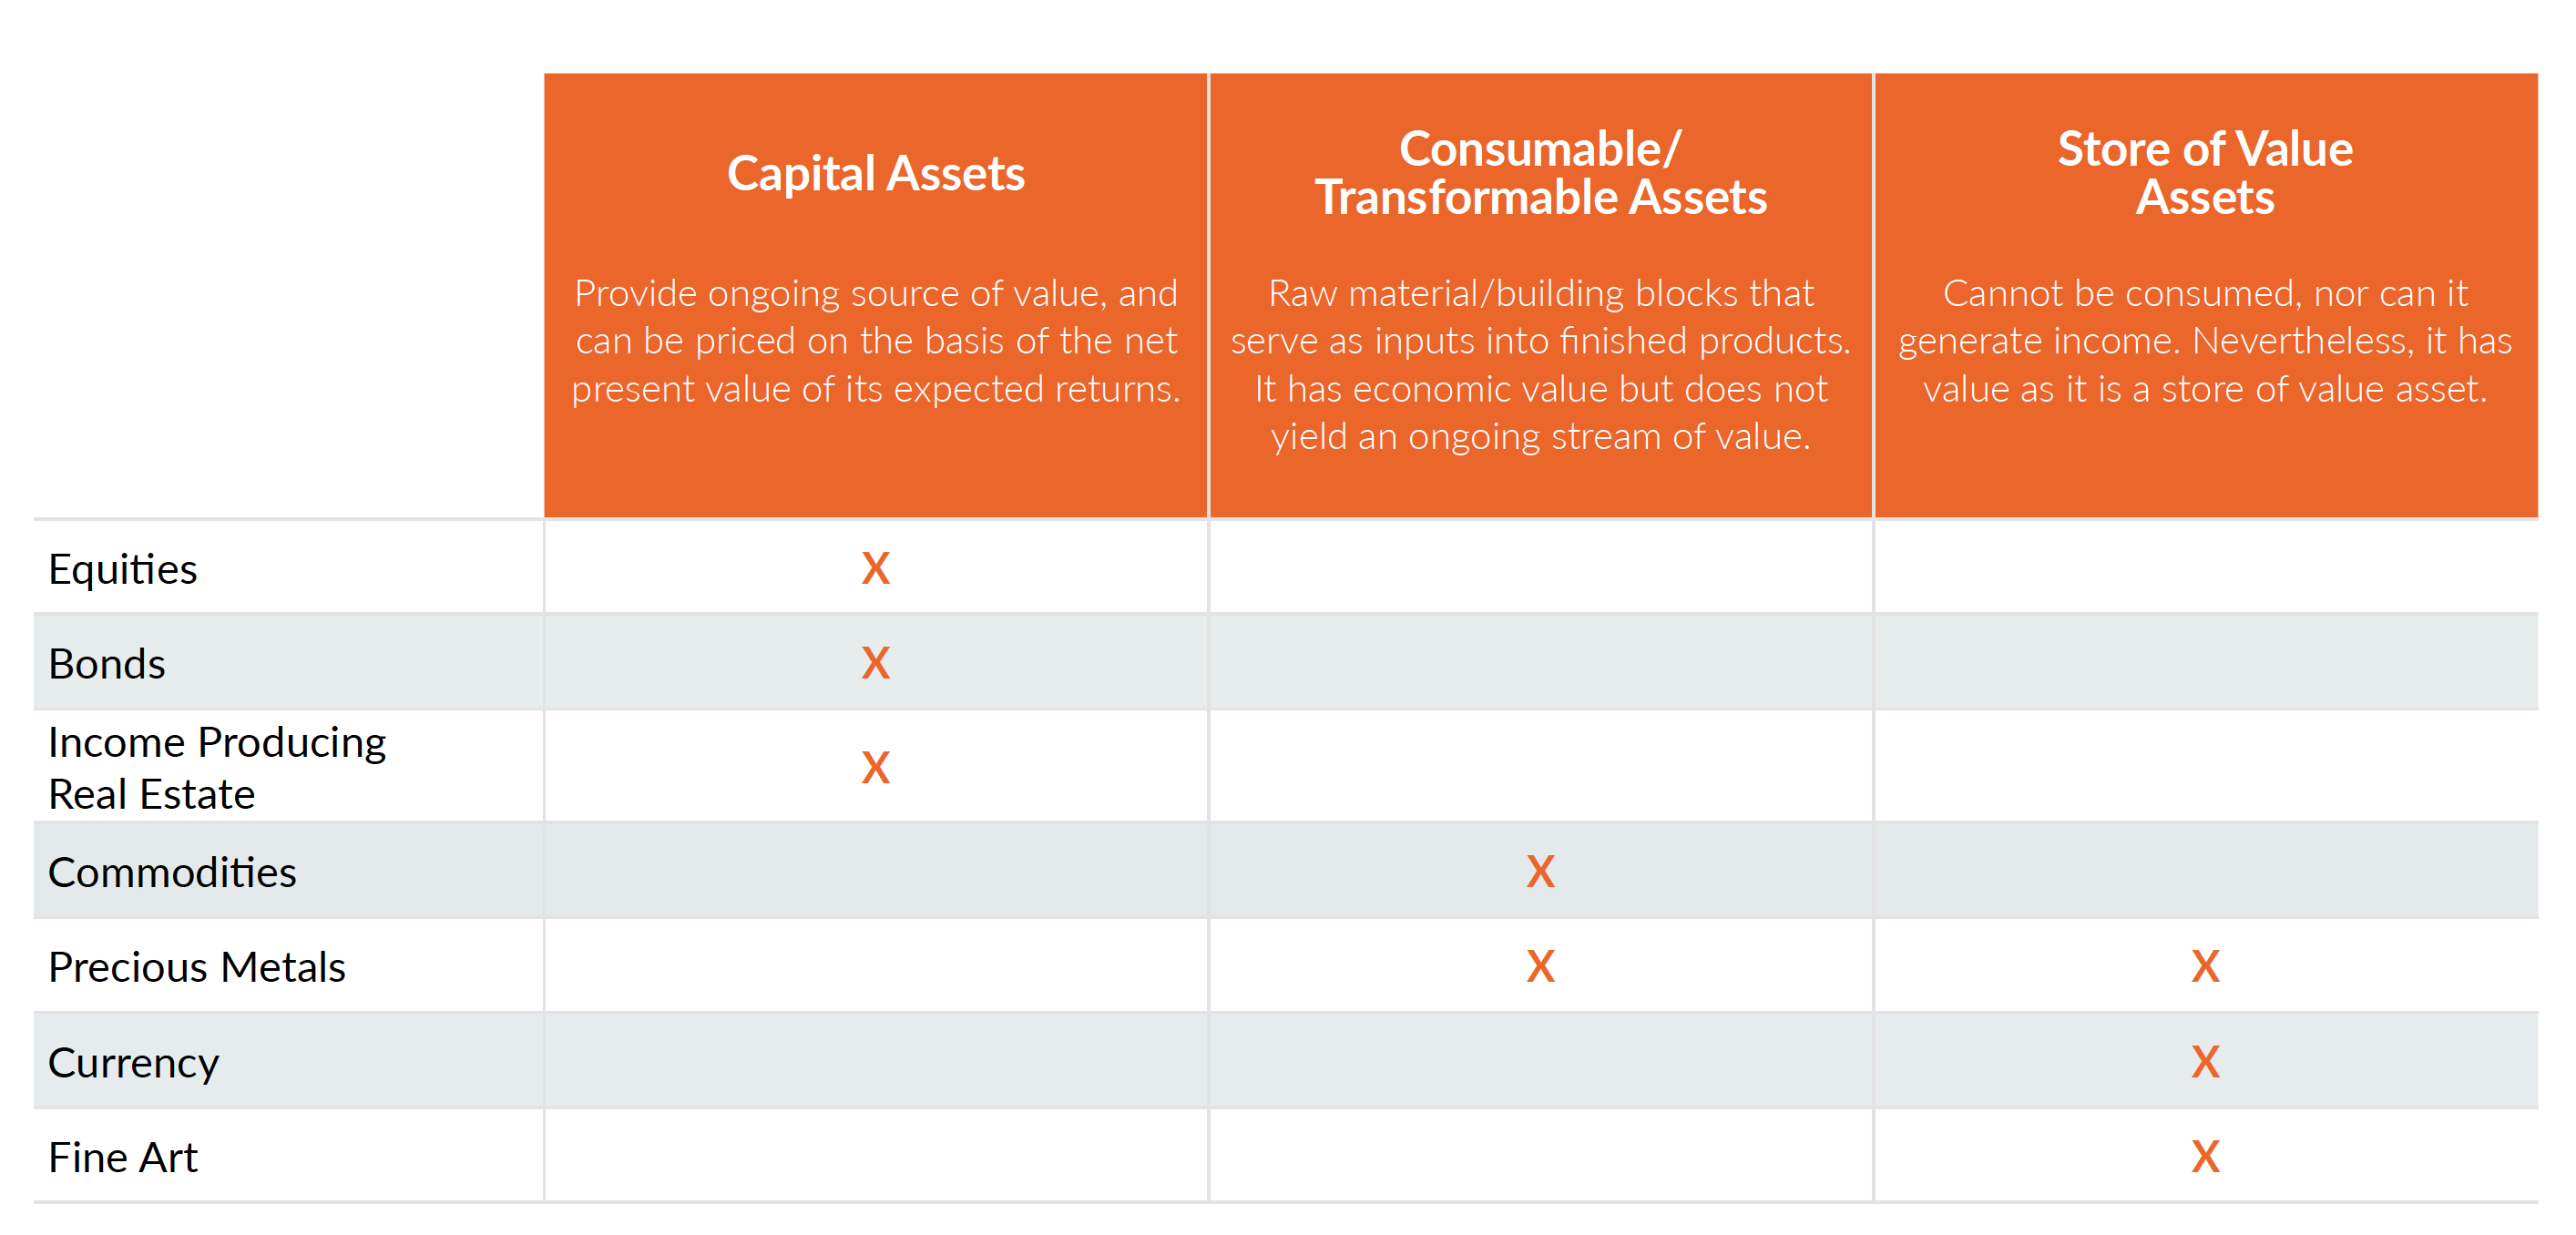 Three global asset classes